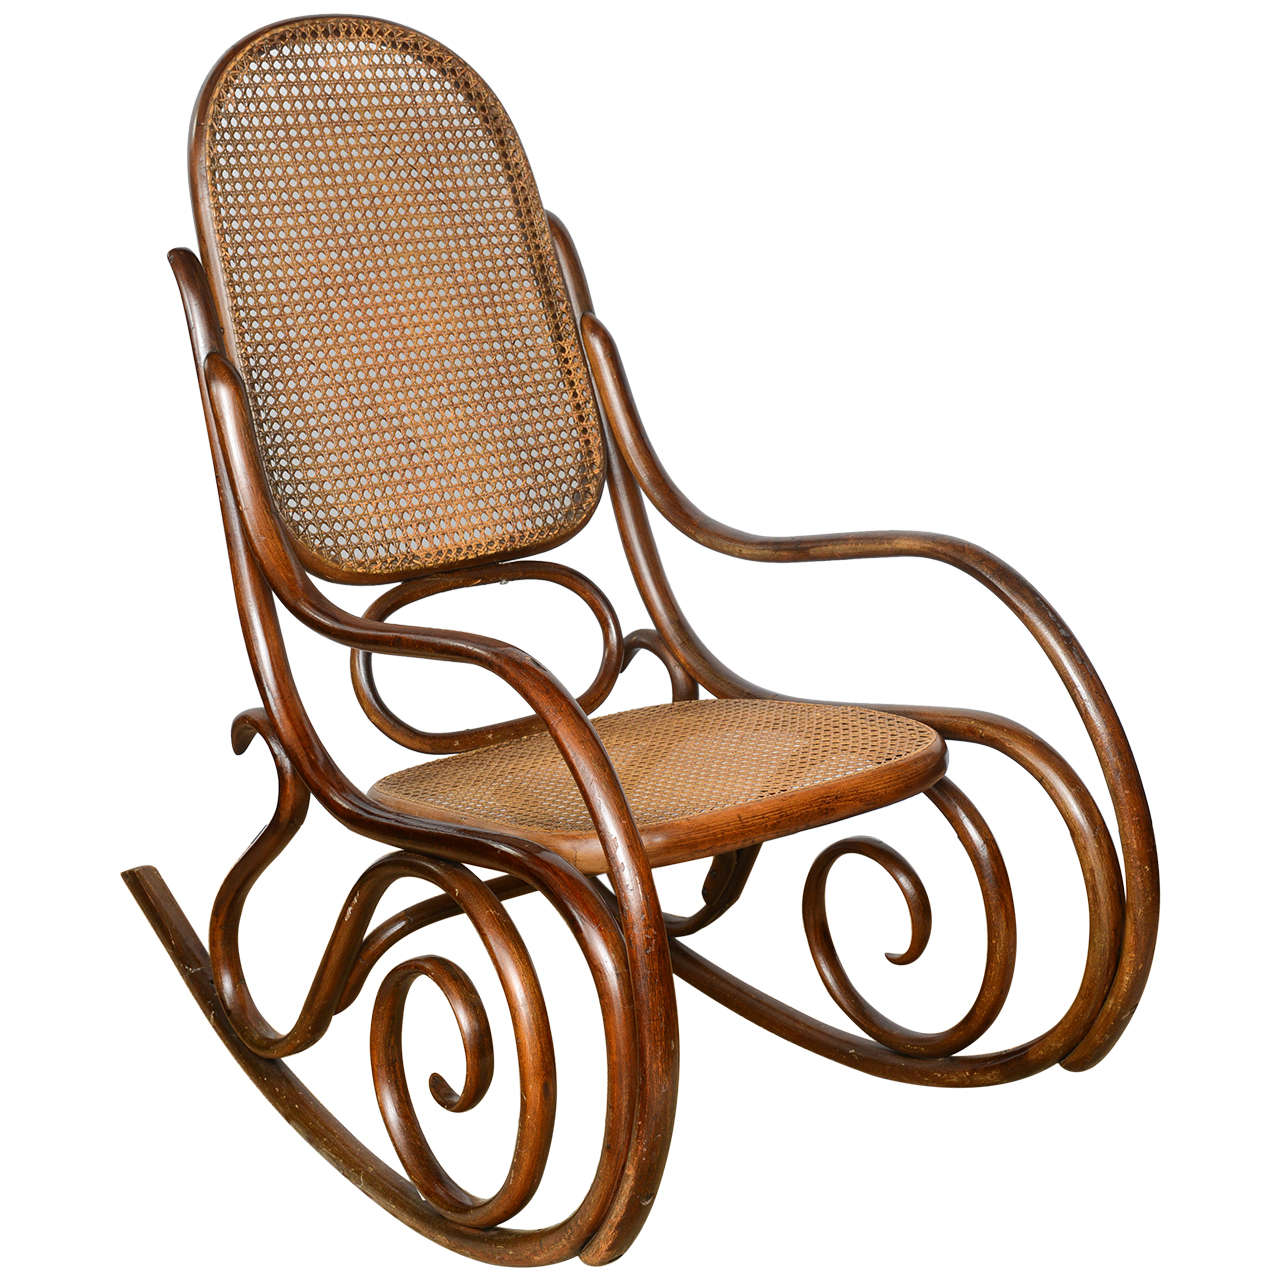 bent wood rocking chair faux leather recliner covers vintage thonet bentwood at 1stdibs for sale